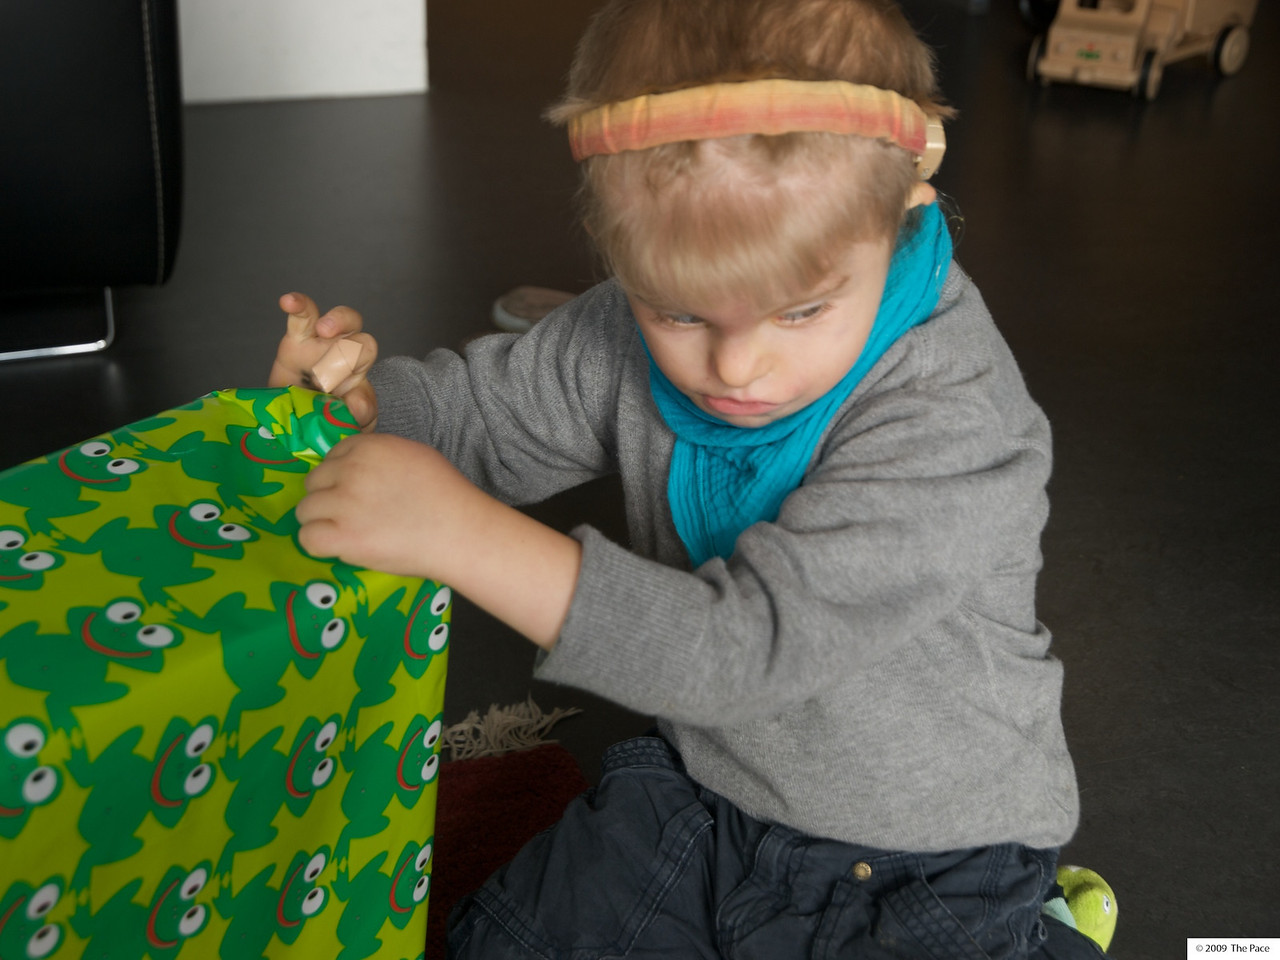 Monday 19th Oct 2009 - Cai wonders if he really should open his present